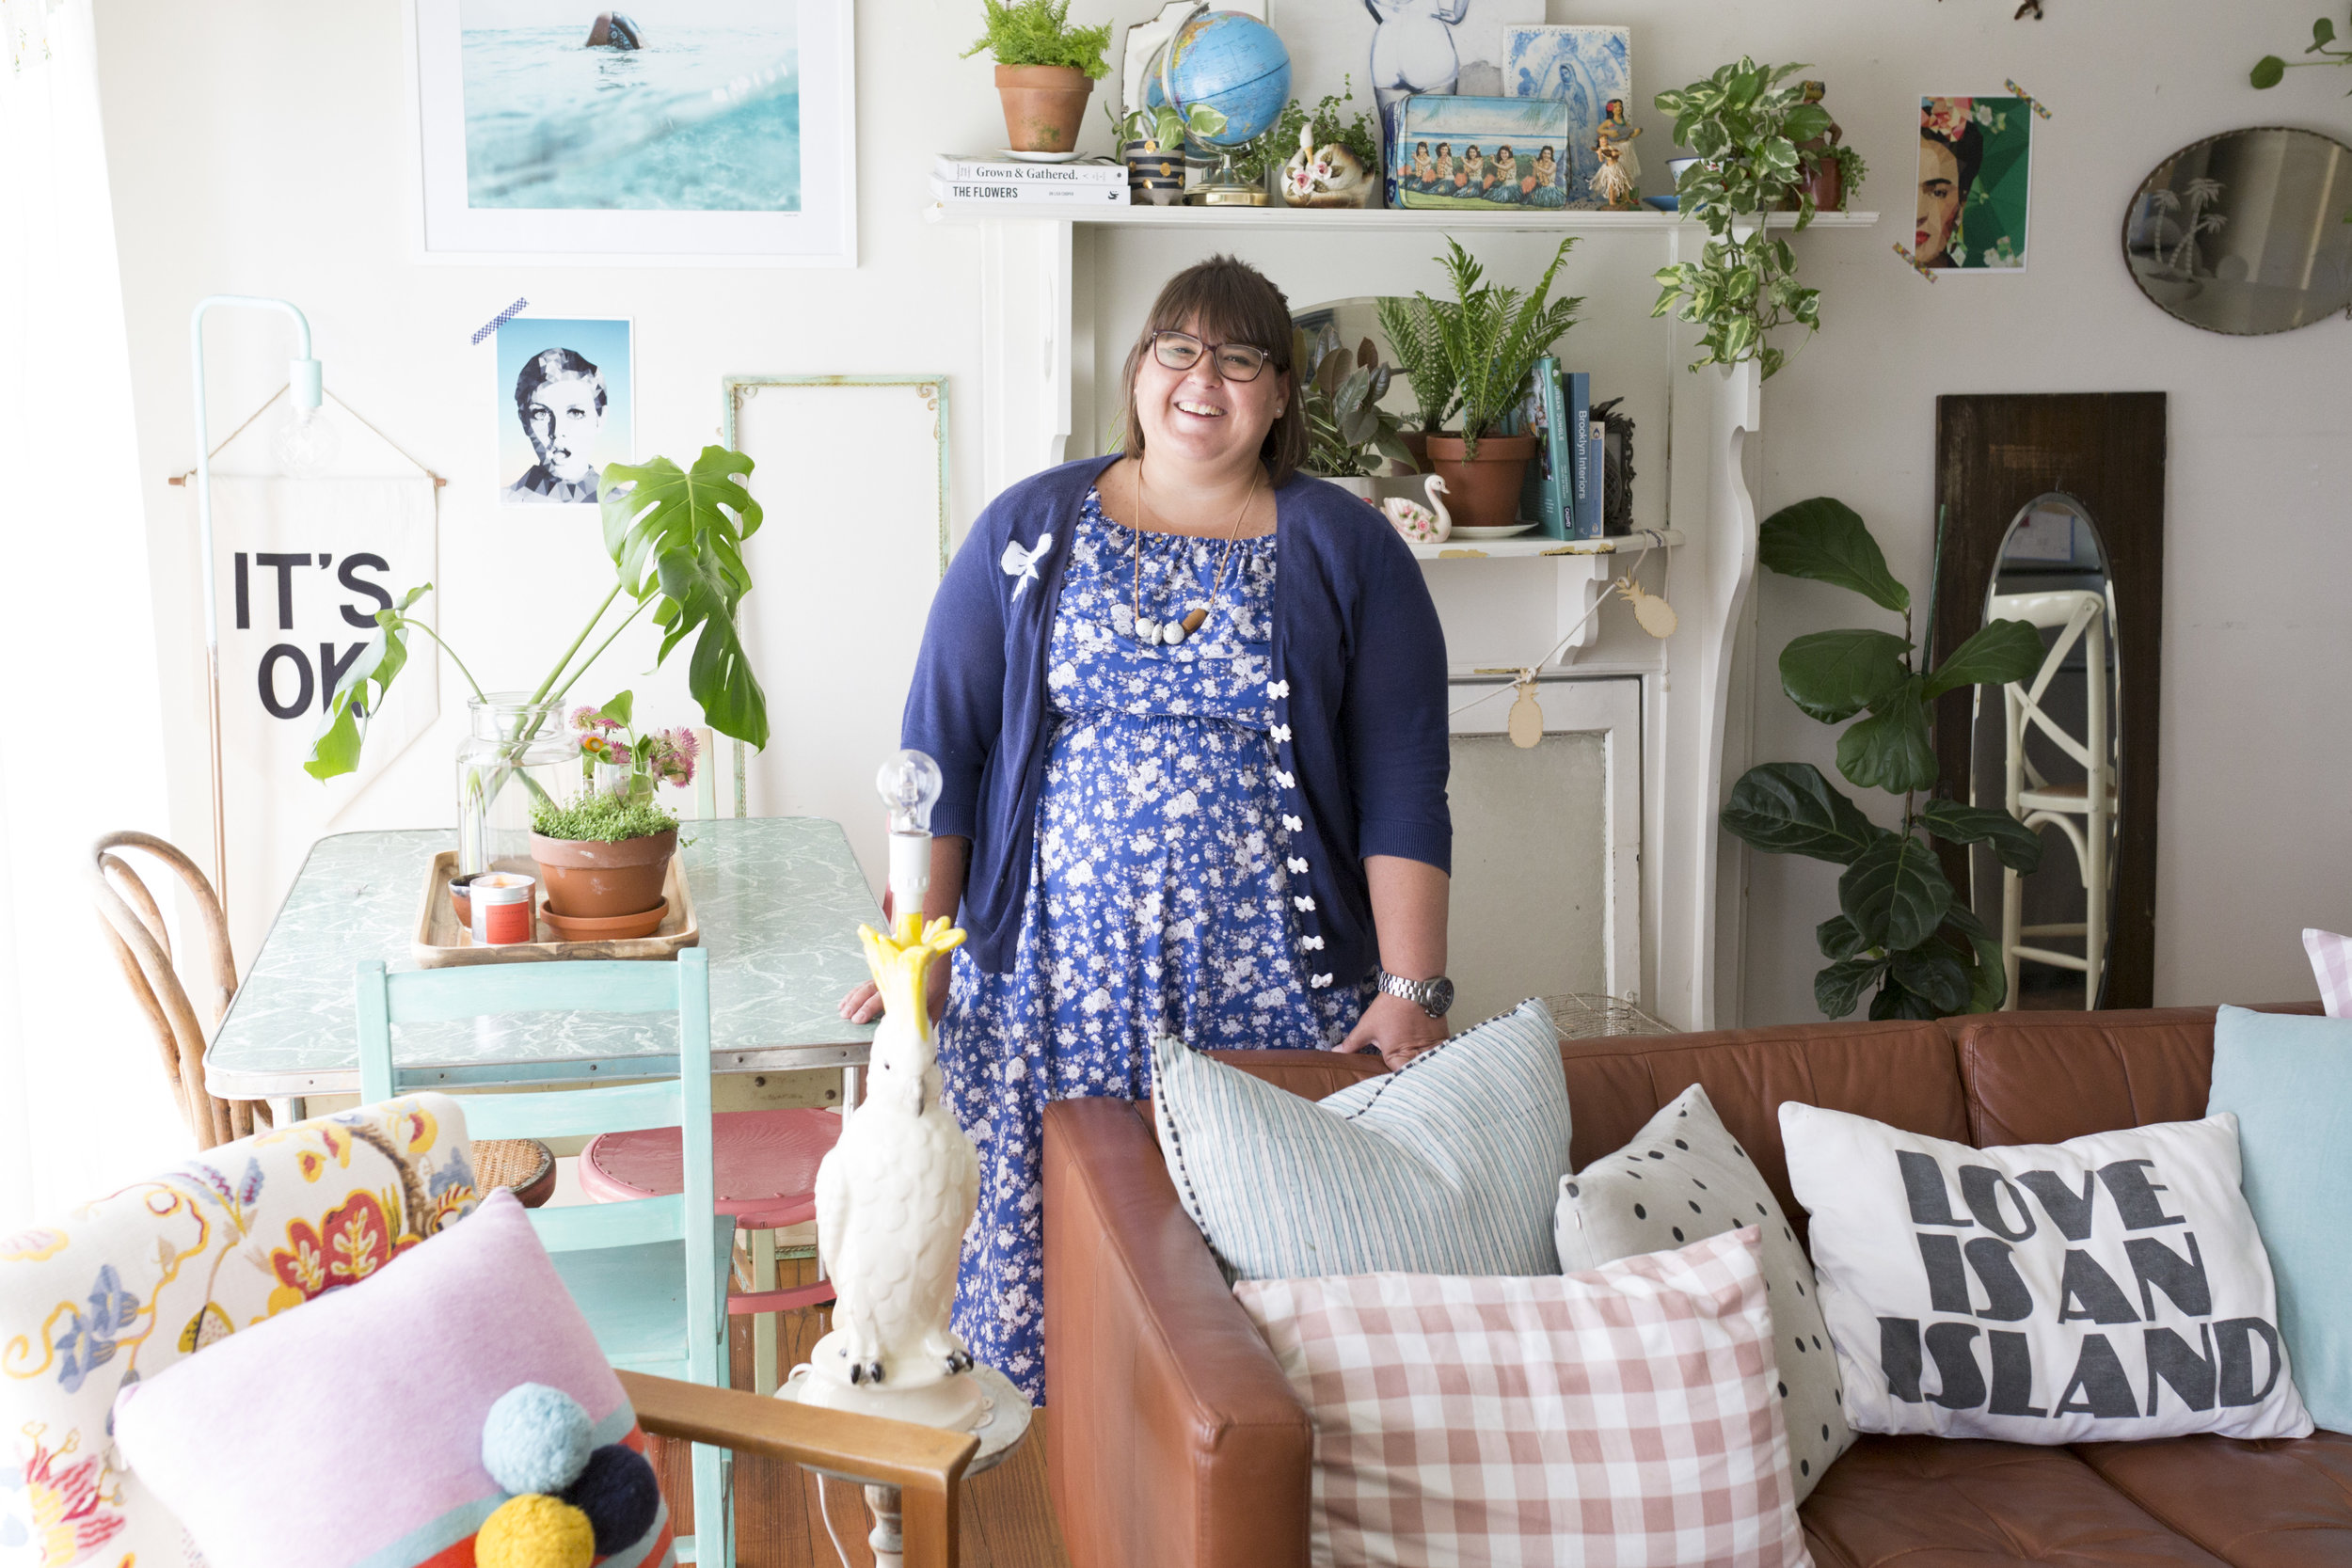 Justine Savage's Mornington home. Rented Space